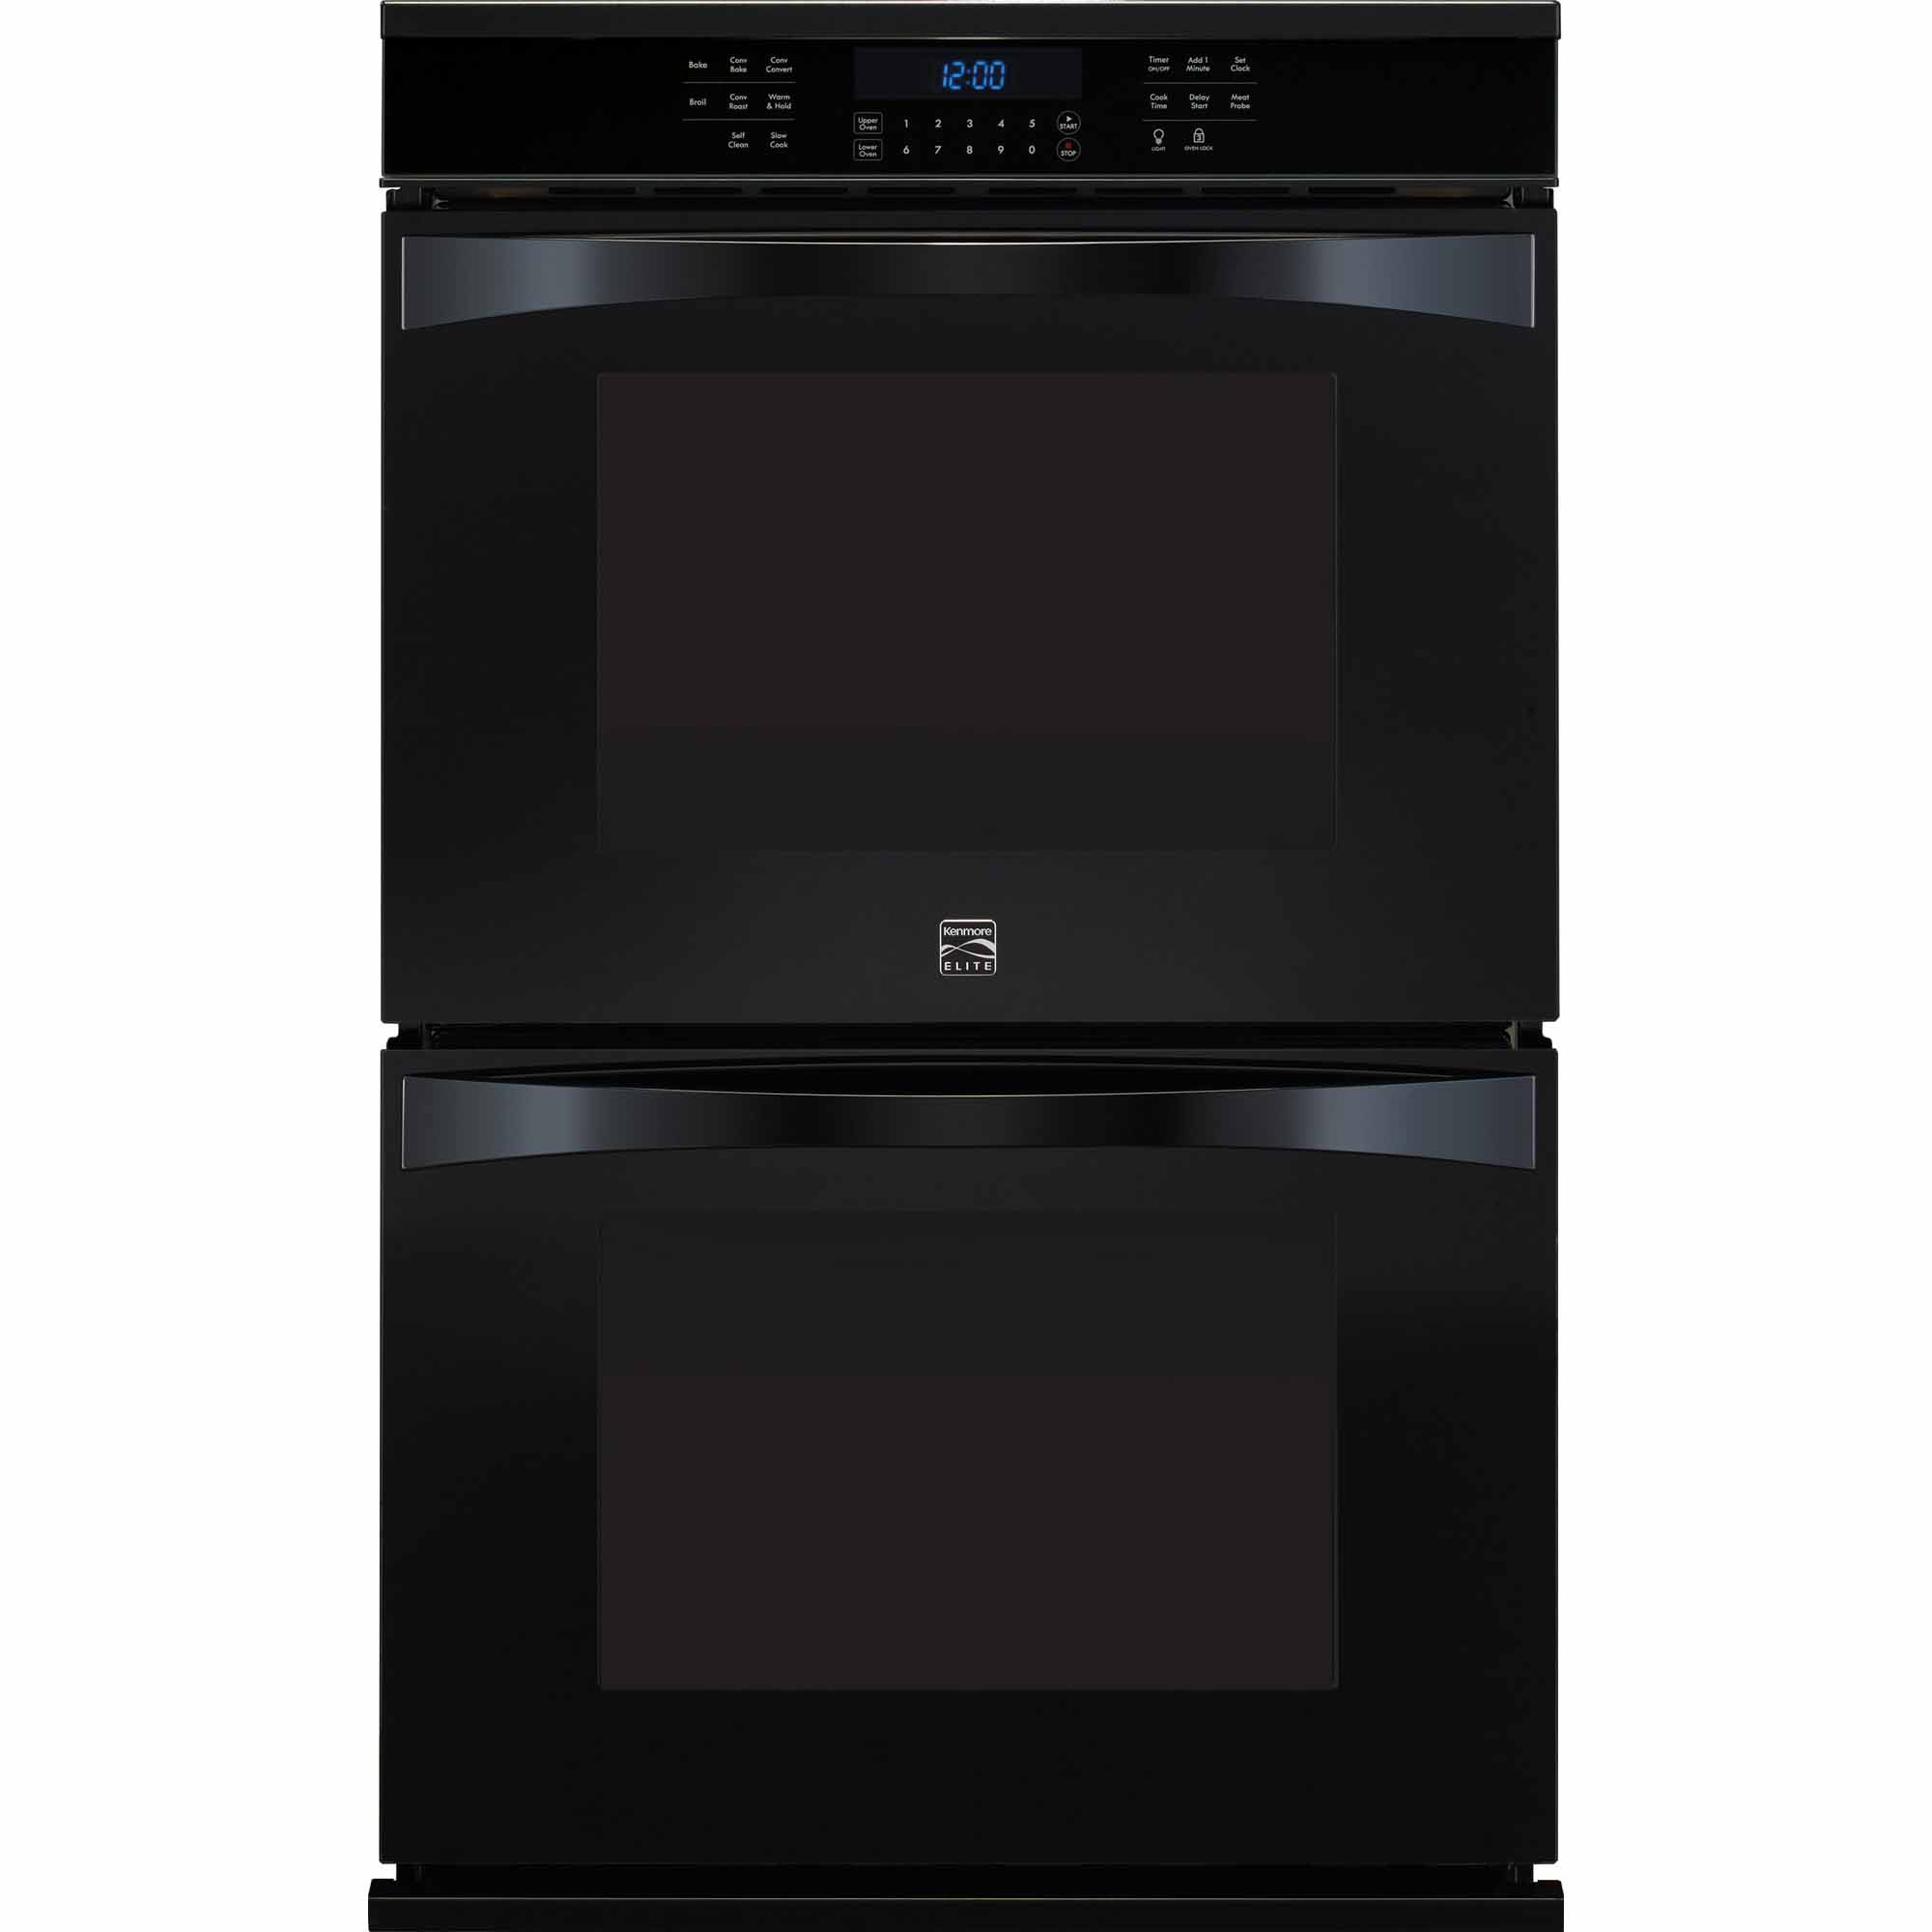 Kenmore Elite 48459 30 Electric Double Wall Oven - Black